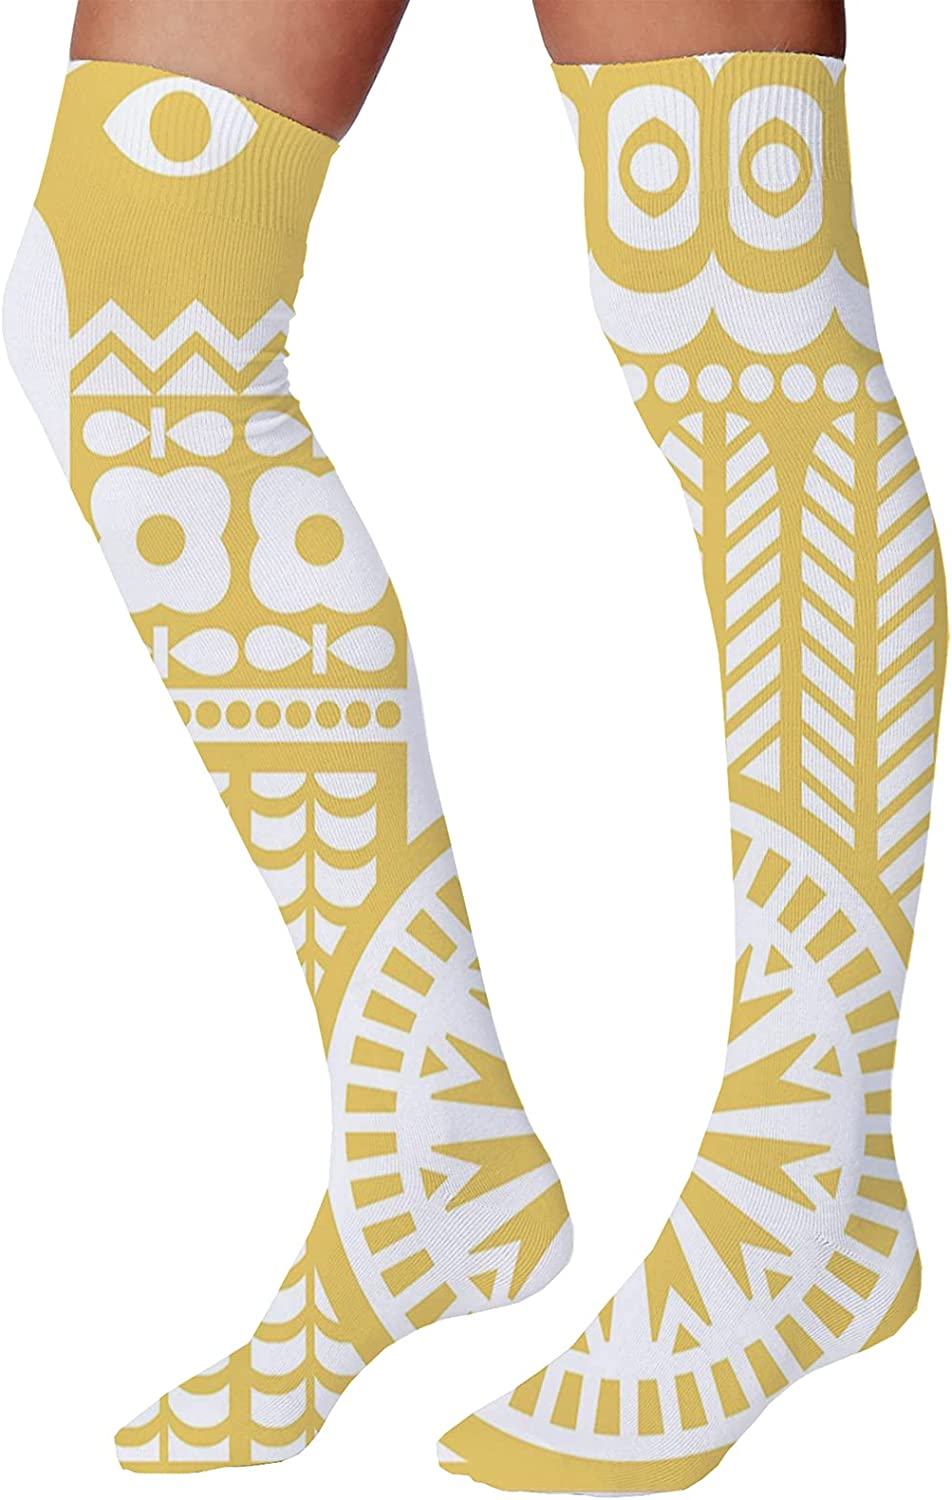 Men's and Women's Fun Socks,Abstract Bicolour Style Motif Repetitive Rounds Illustration